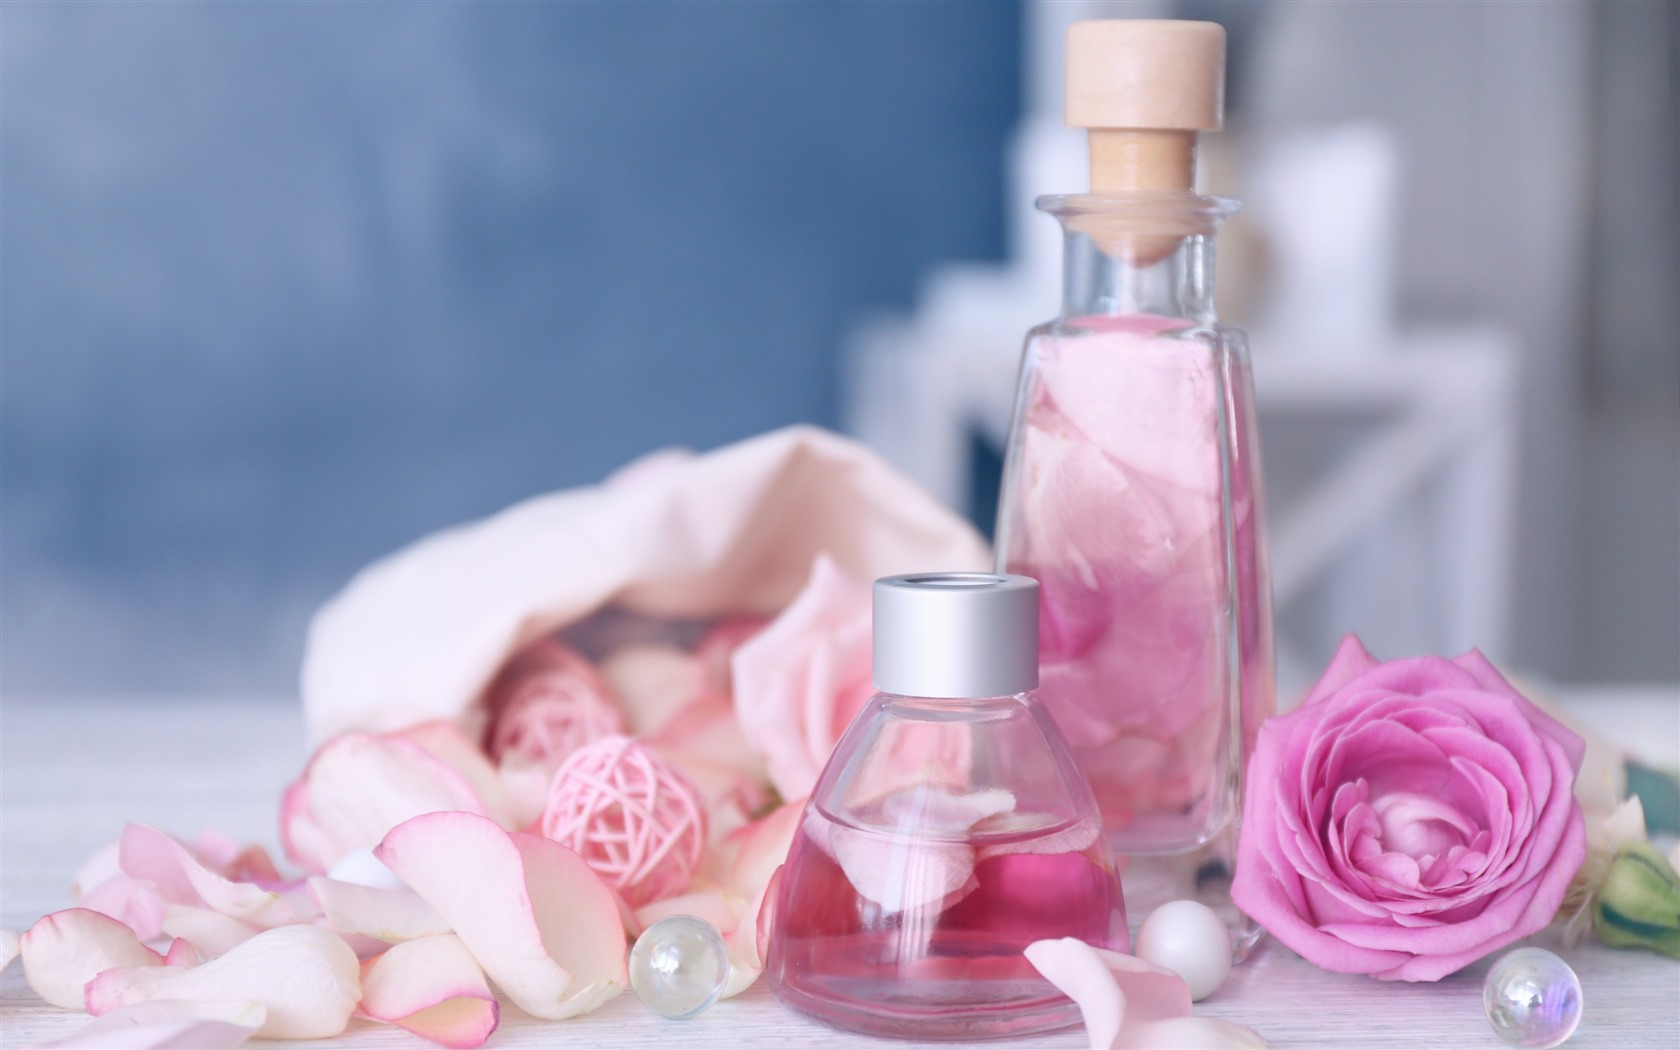 Wallpaper Pink Roses Bottle Perfume 2880x1800 Hd Picture